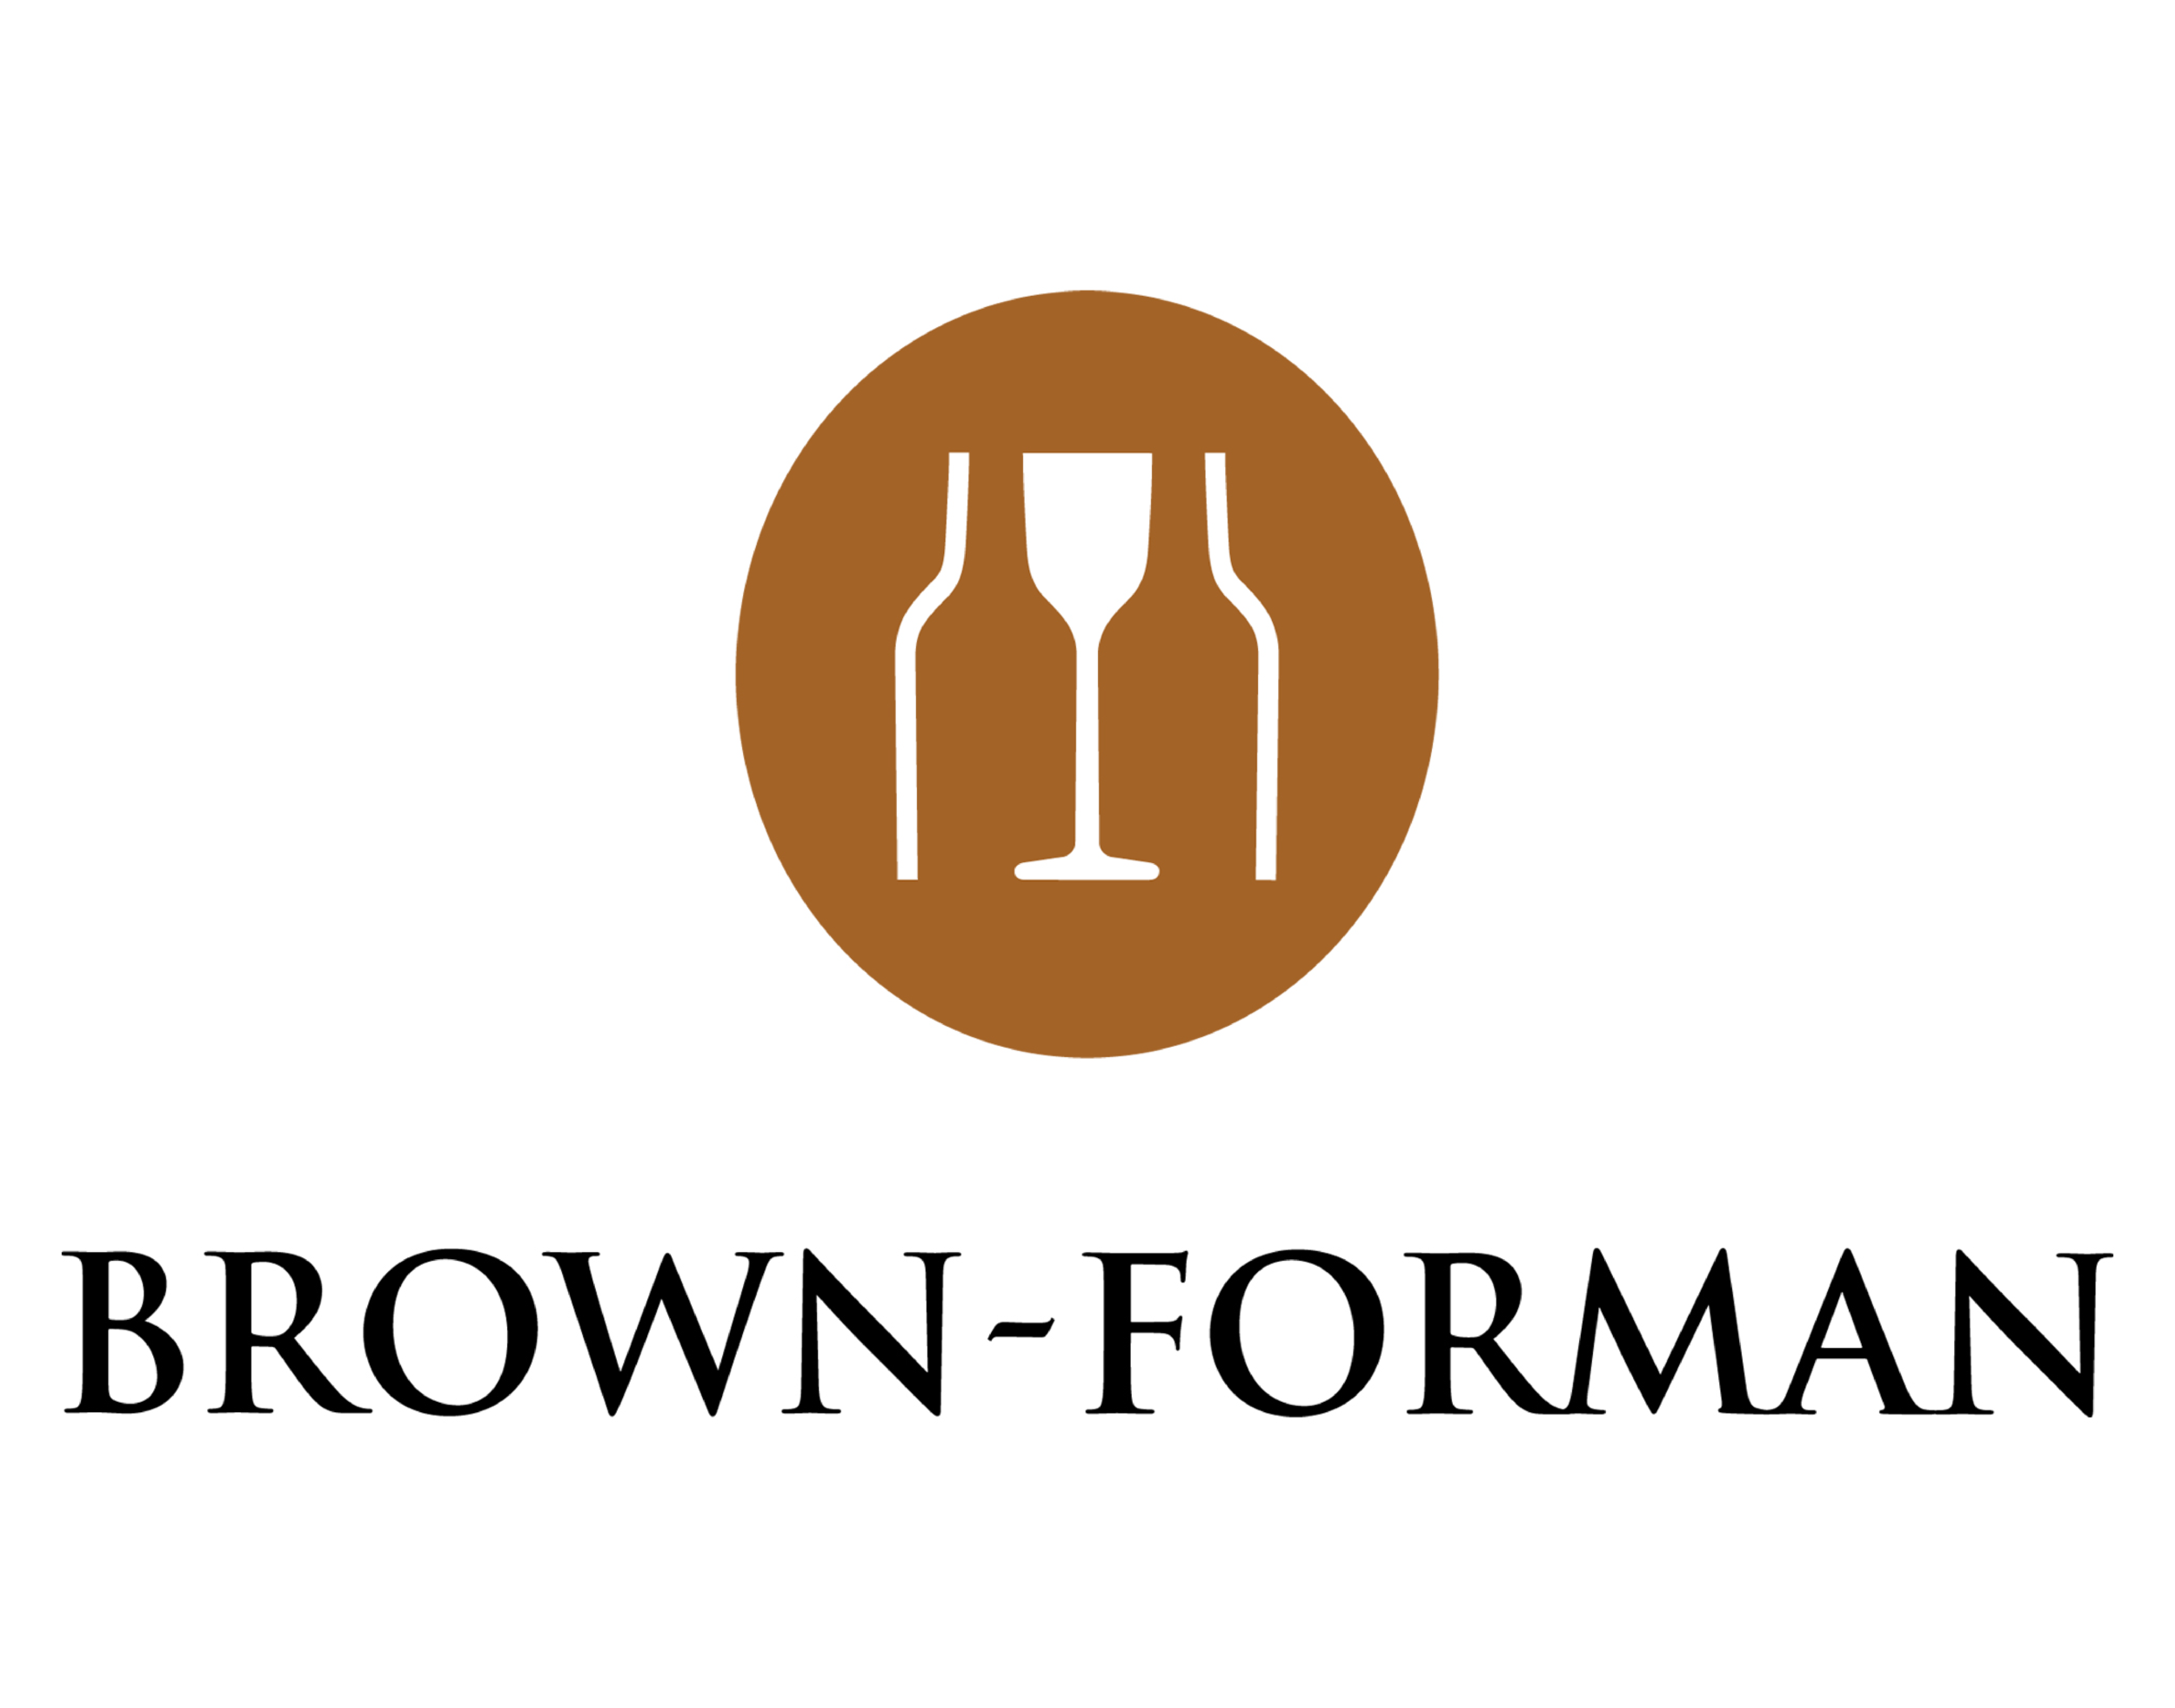 Brown-Forman logo. Links to Brown-Forman website.